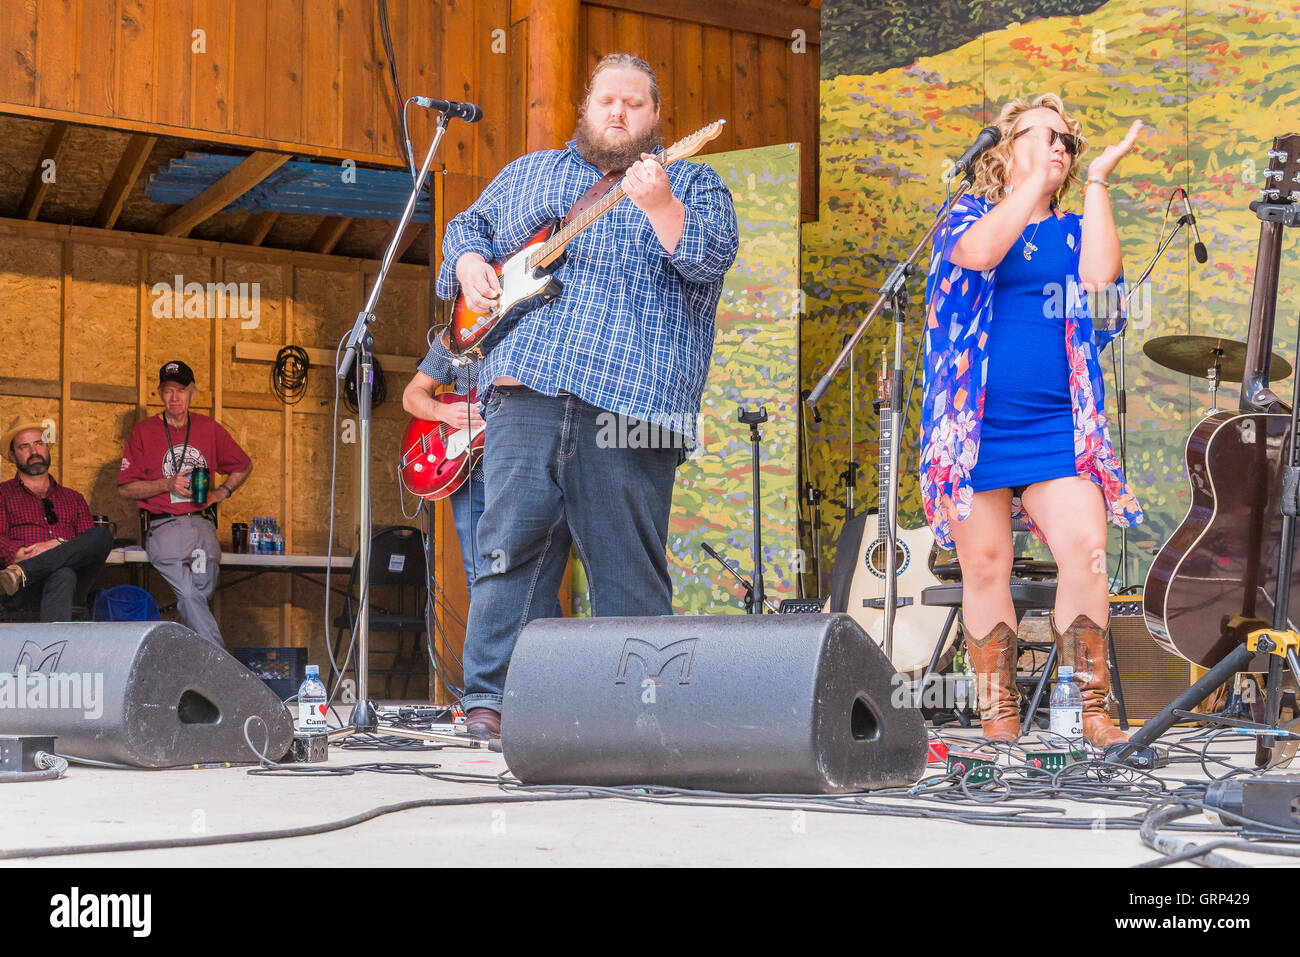 Samantha Martin and Matt Anderson  at Canmore Folk Music Festival, Canmore, Alberta, Canada - Stock Image